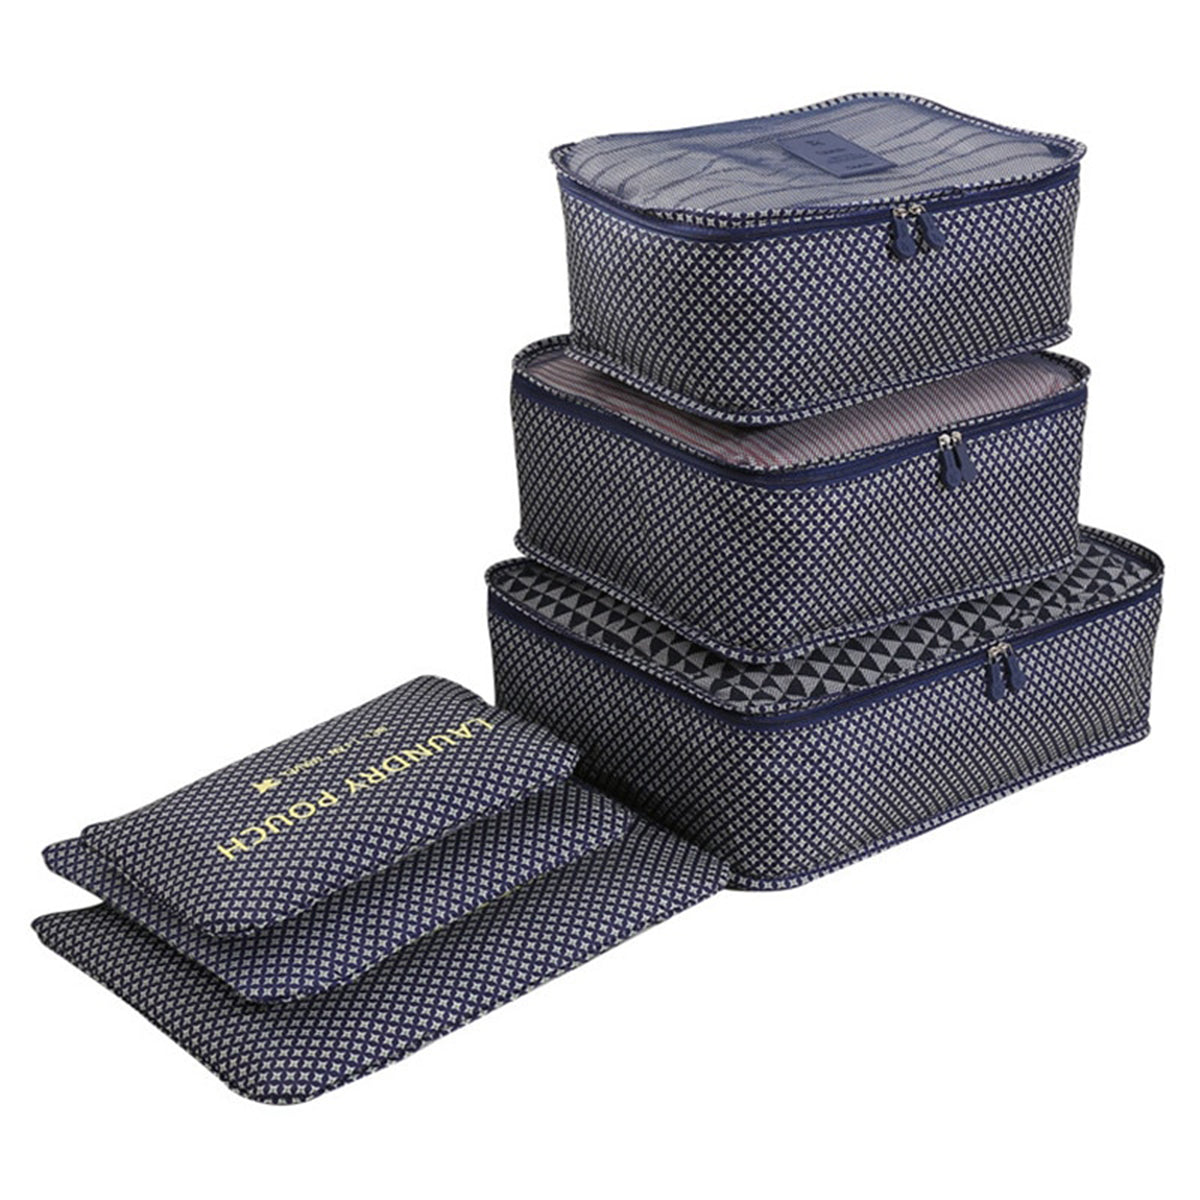 Travel Organizer Suitcase with Clothing Dividers